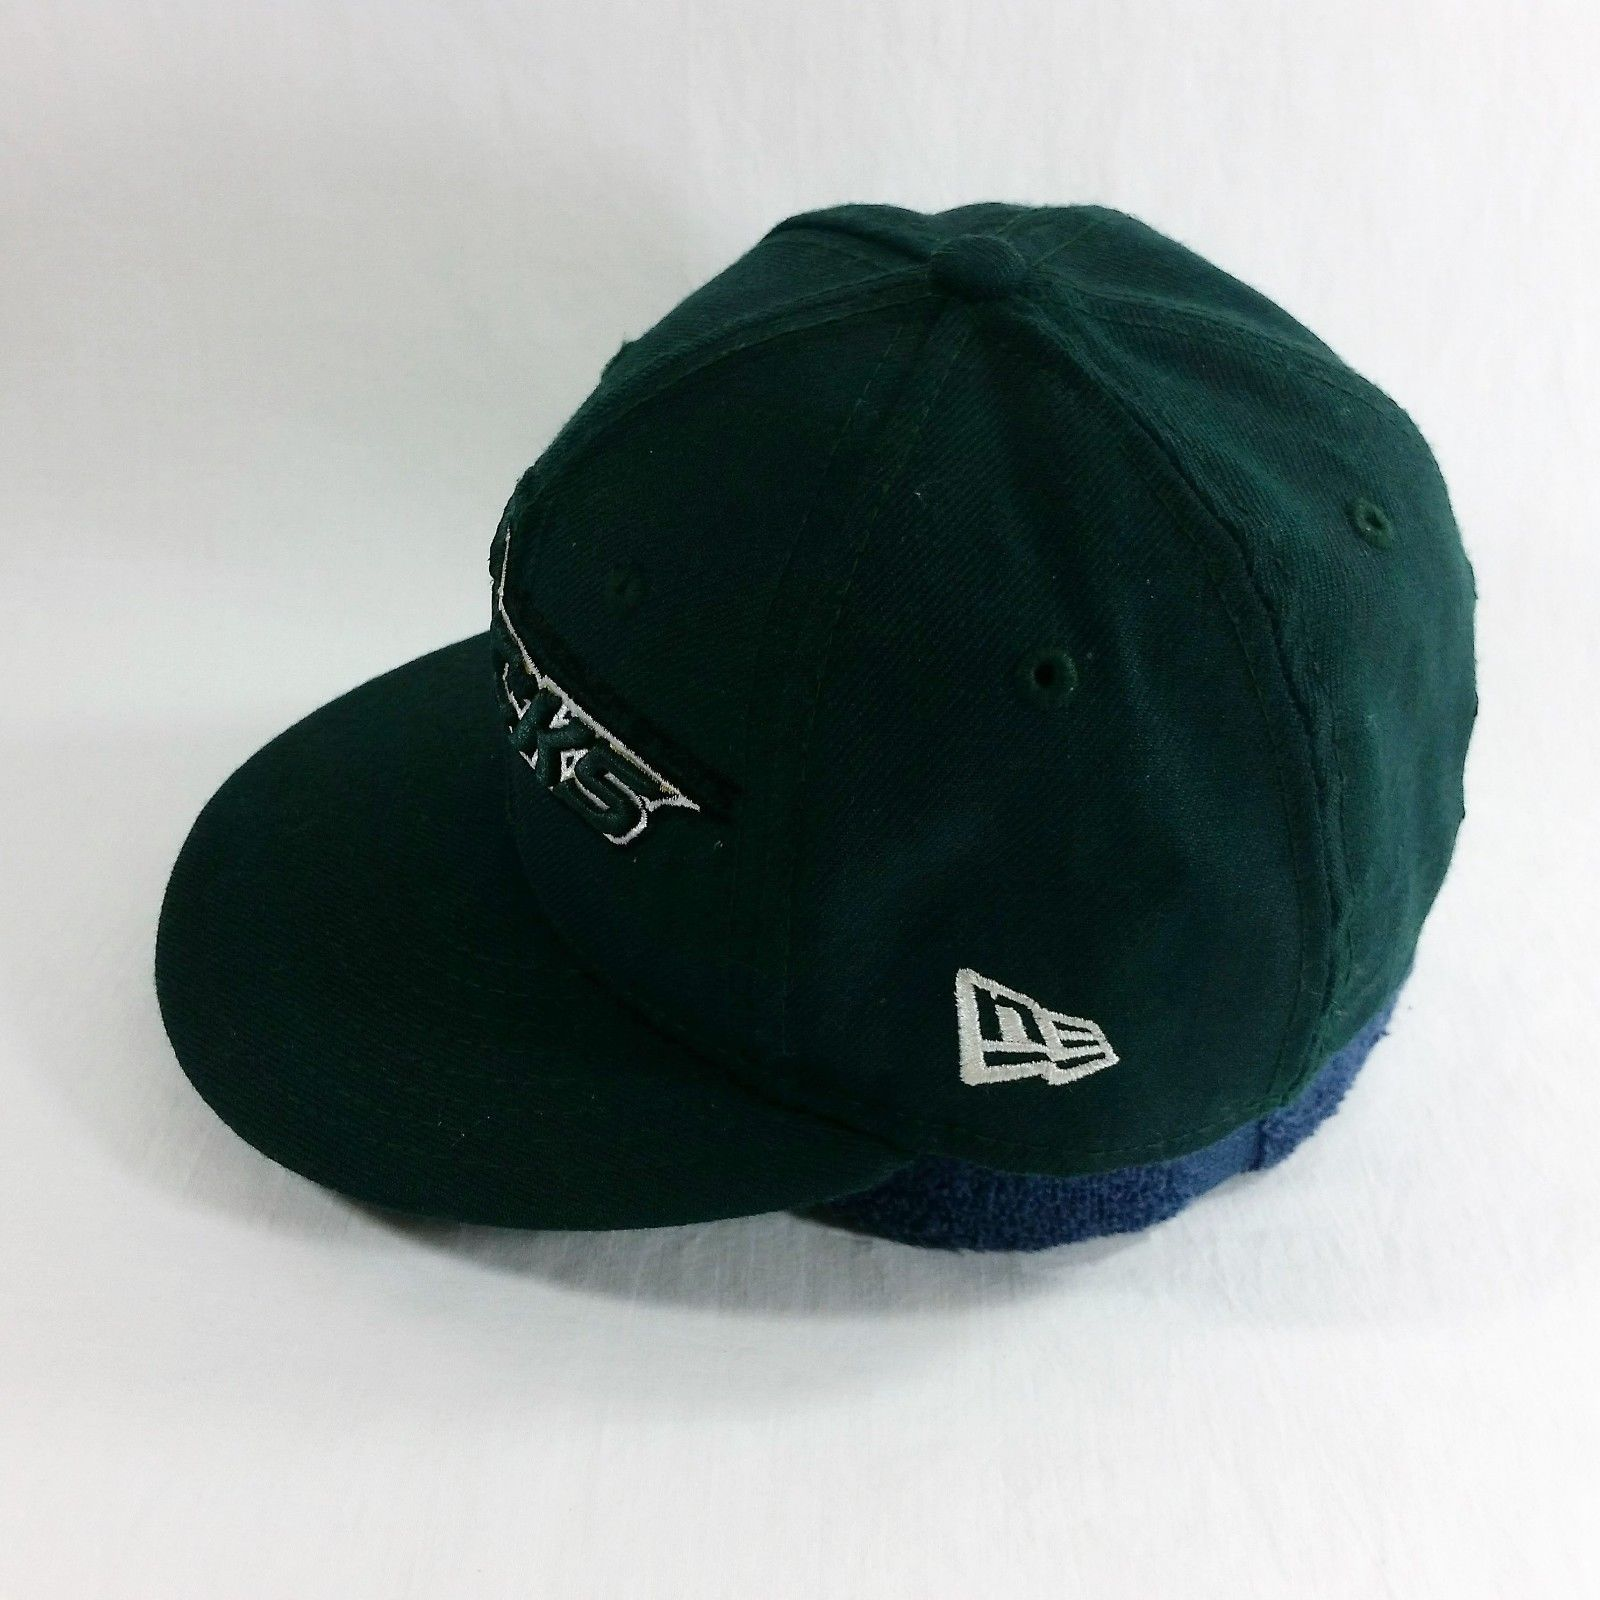 Humboldt State Lumberjacks HSU Fitted Cap Hat New Era 6 5/8 Jacks Wool 5950 image 4